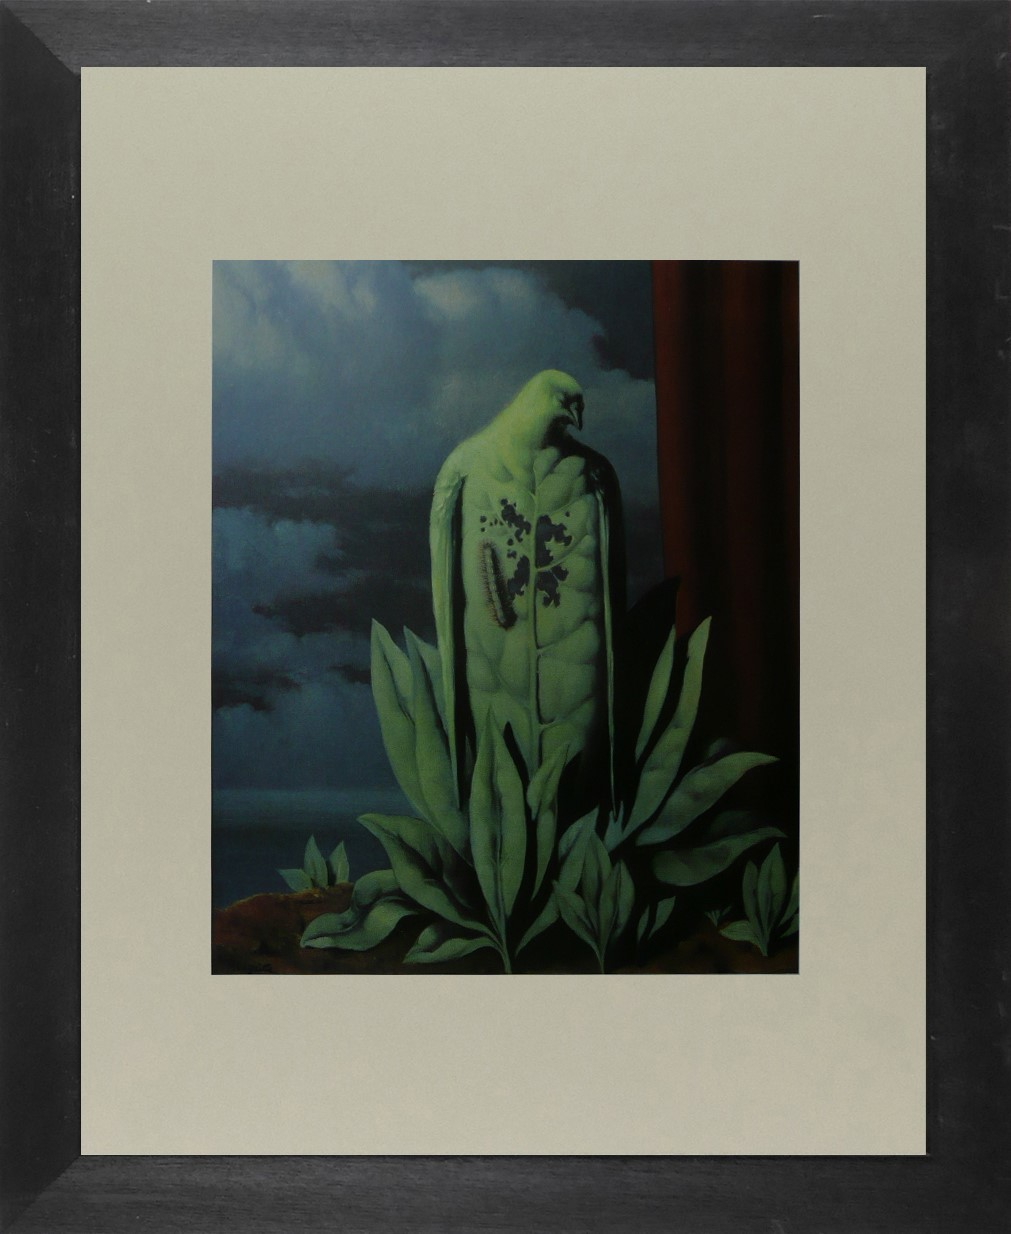 The flavour of tears - Ren Magritte - Framed Picture 11 x 14